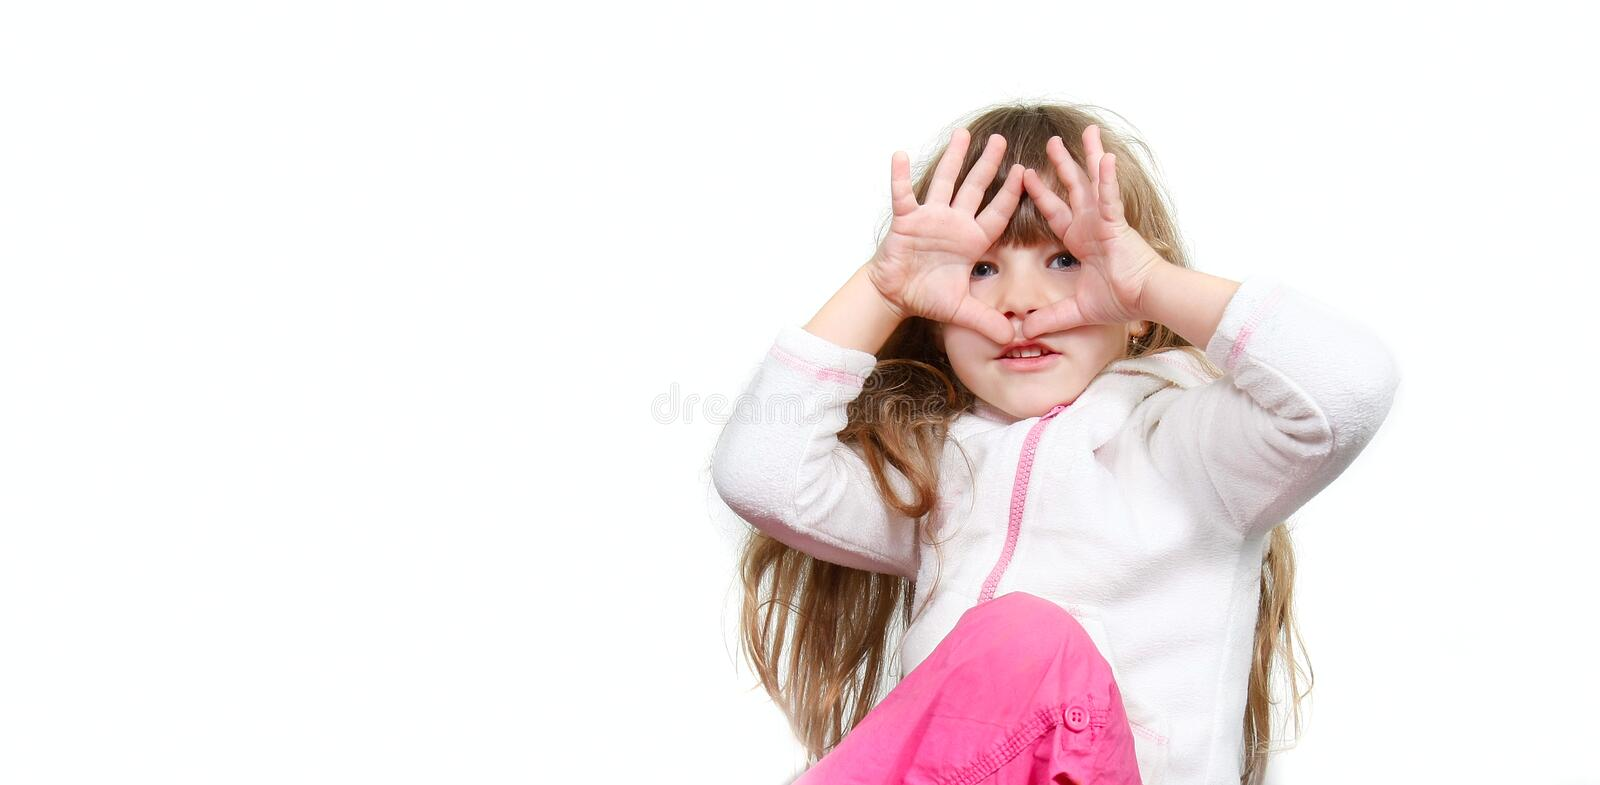 Cute Girl Looking Through Her Fingers Stock Image